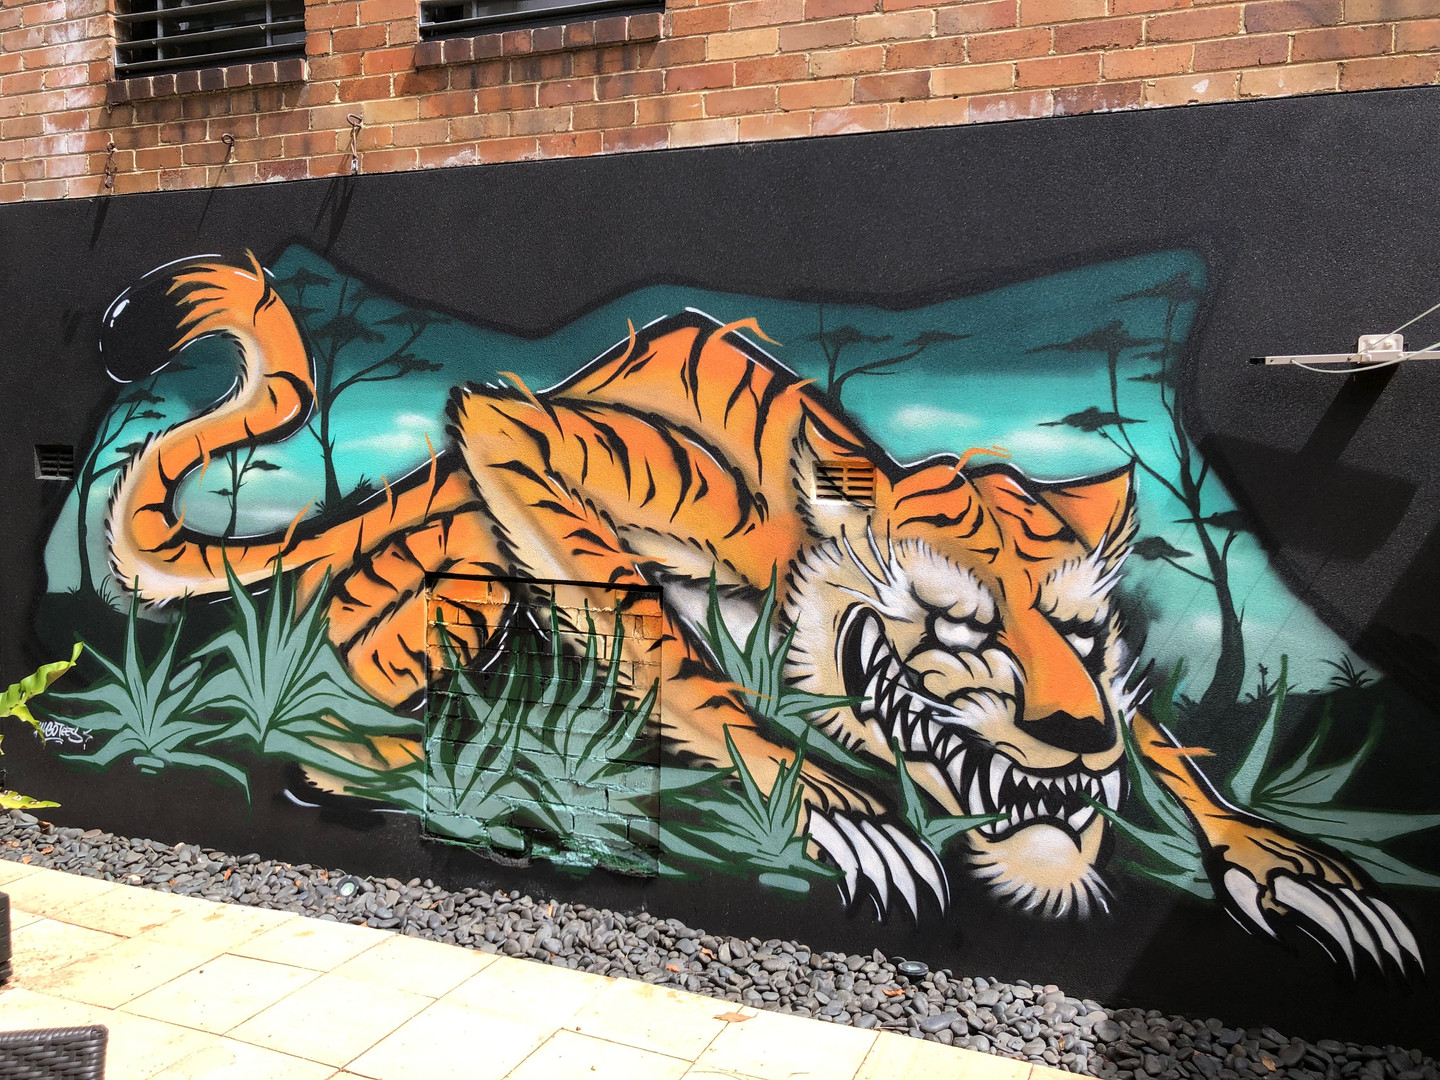 Graffiti, Tiger, Street Art, Spray Paint, Sydney